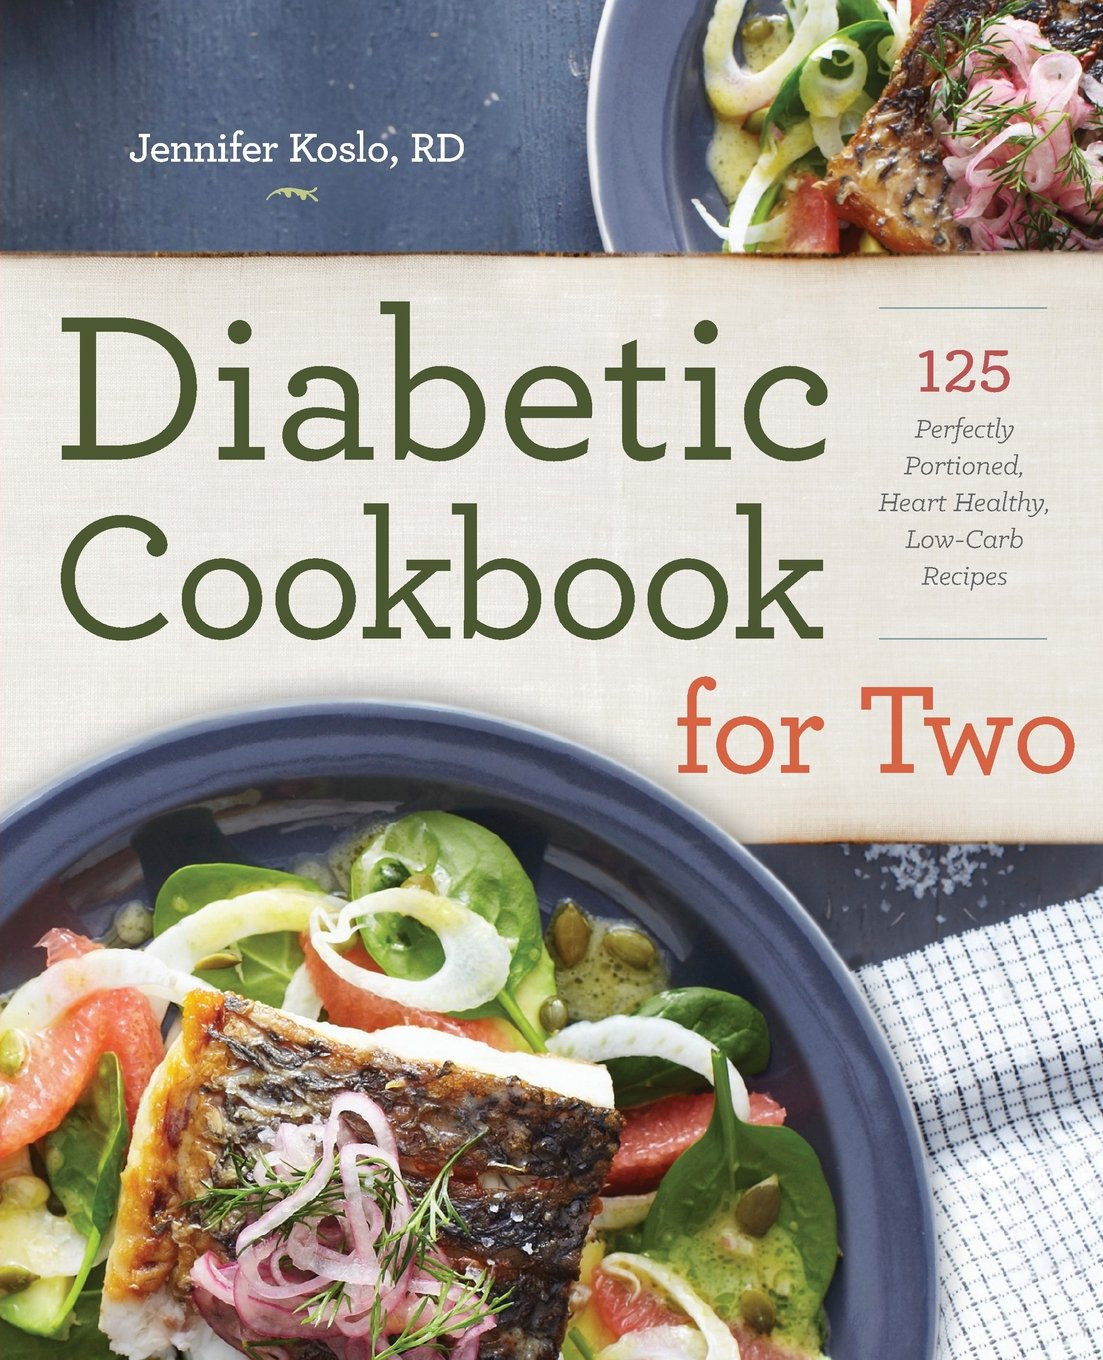 Low Carb Heart Healthy Recipes  Diabetic Cookbook for Two 125 Perfectly Portioned Heart